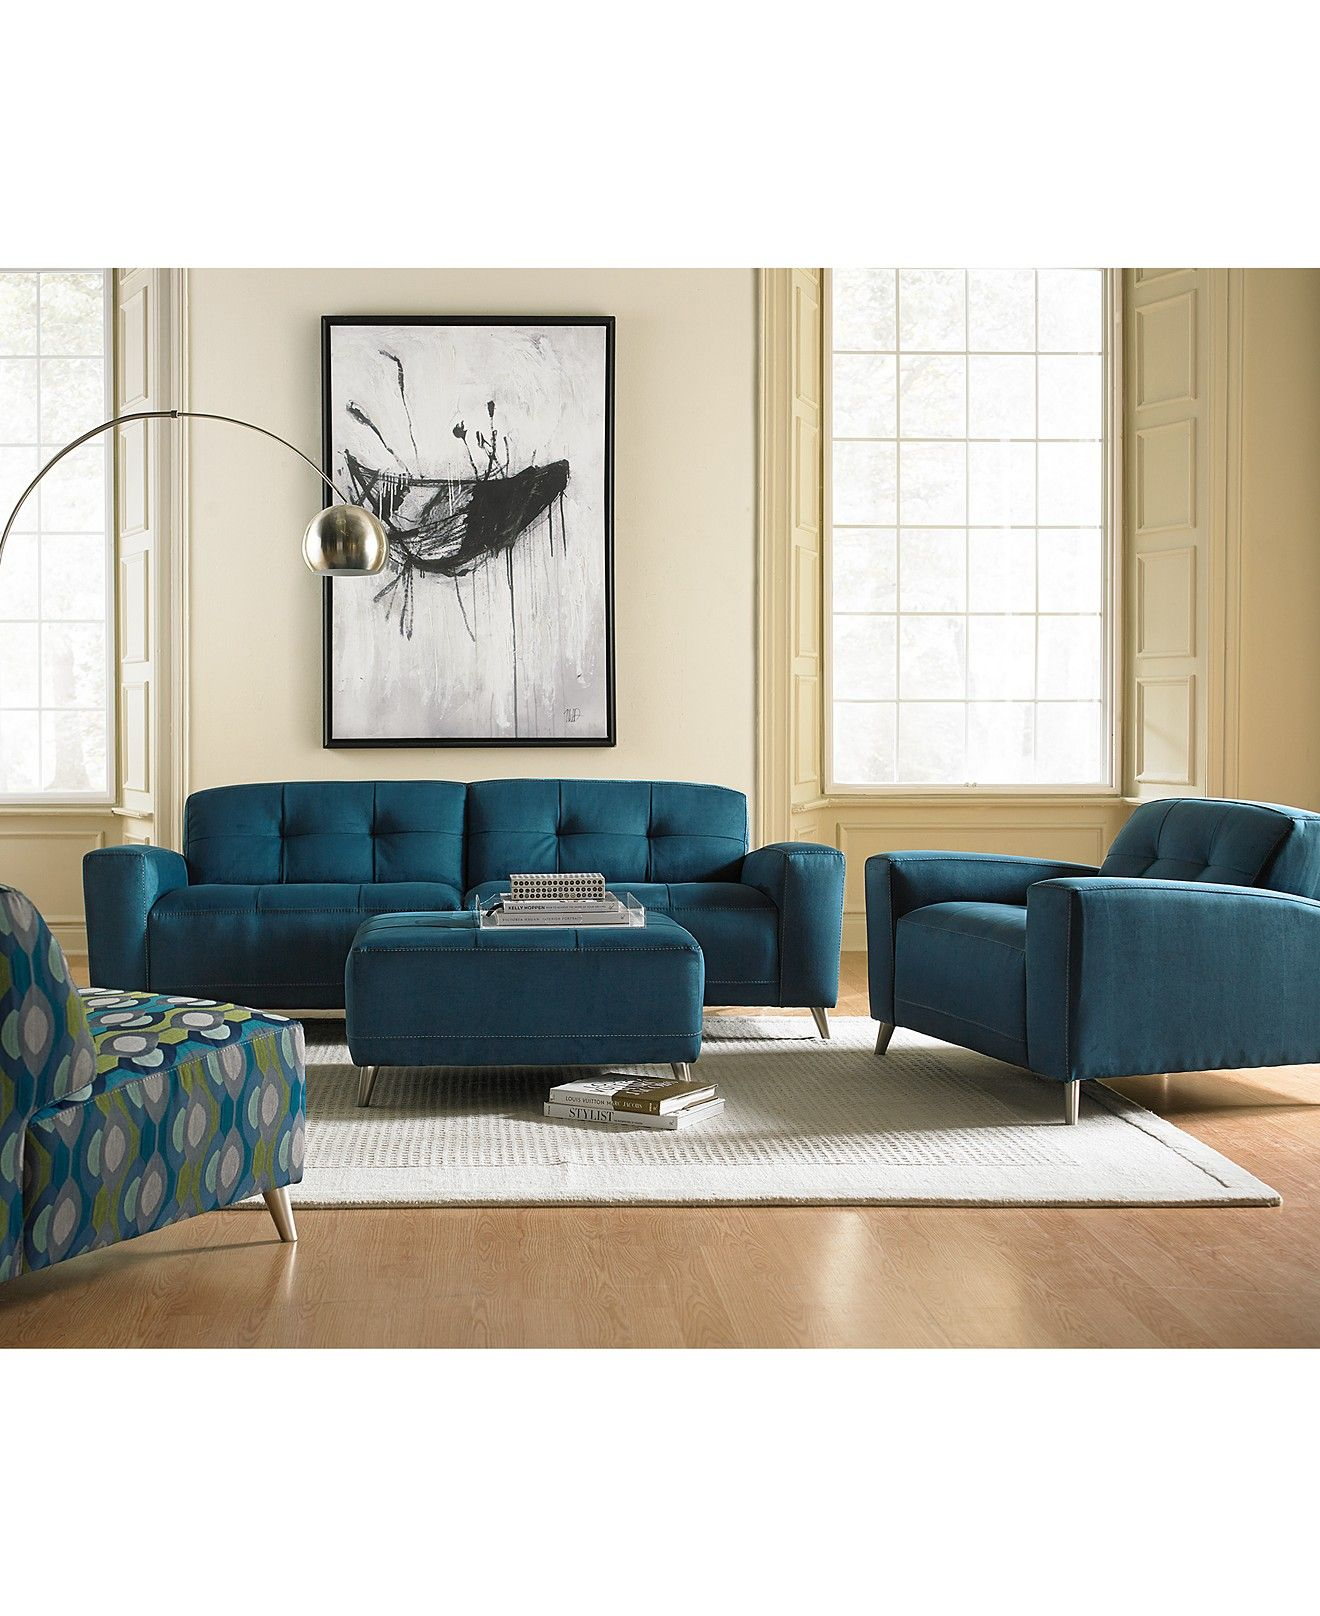 Raniel Fabric Collection Furniture Macy's Furniture